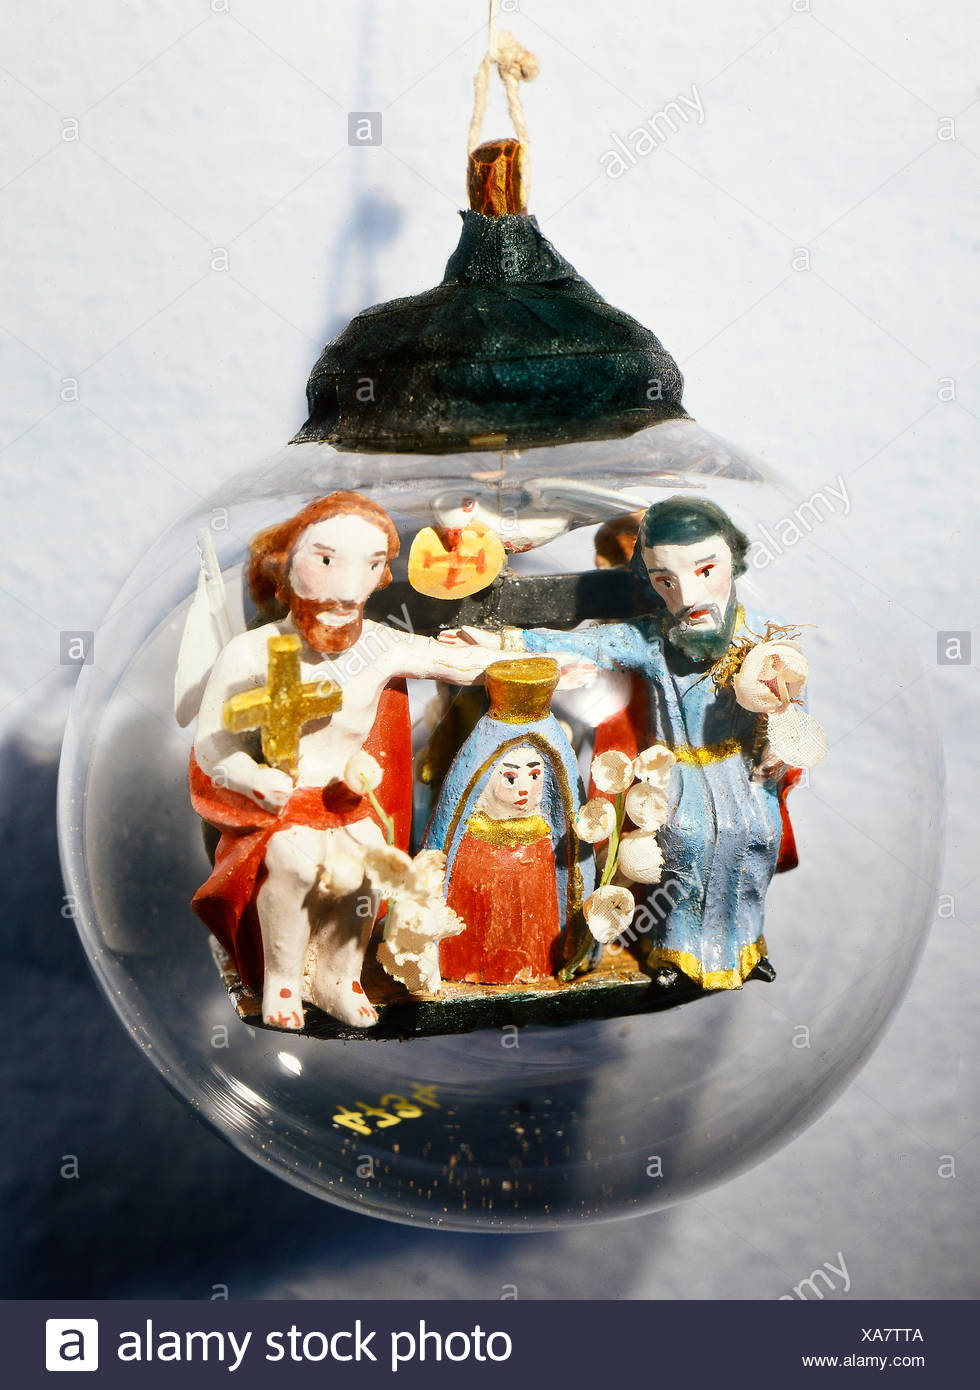 fine arts, folk art, impossible bottle with Coronation of the Virgin, glass, Southern Germany, 19th century, Werdenfels museum, Garmisch-Partenkirchen, Artist's Copyright has not to be cleared - Stock Image